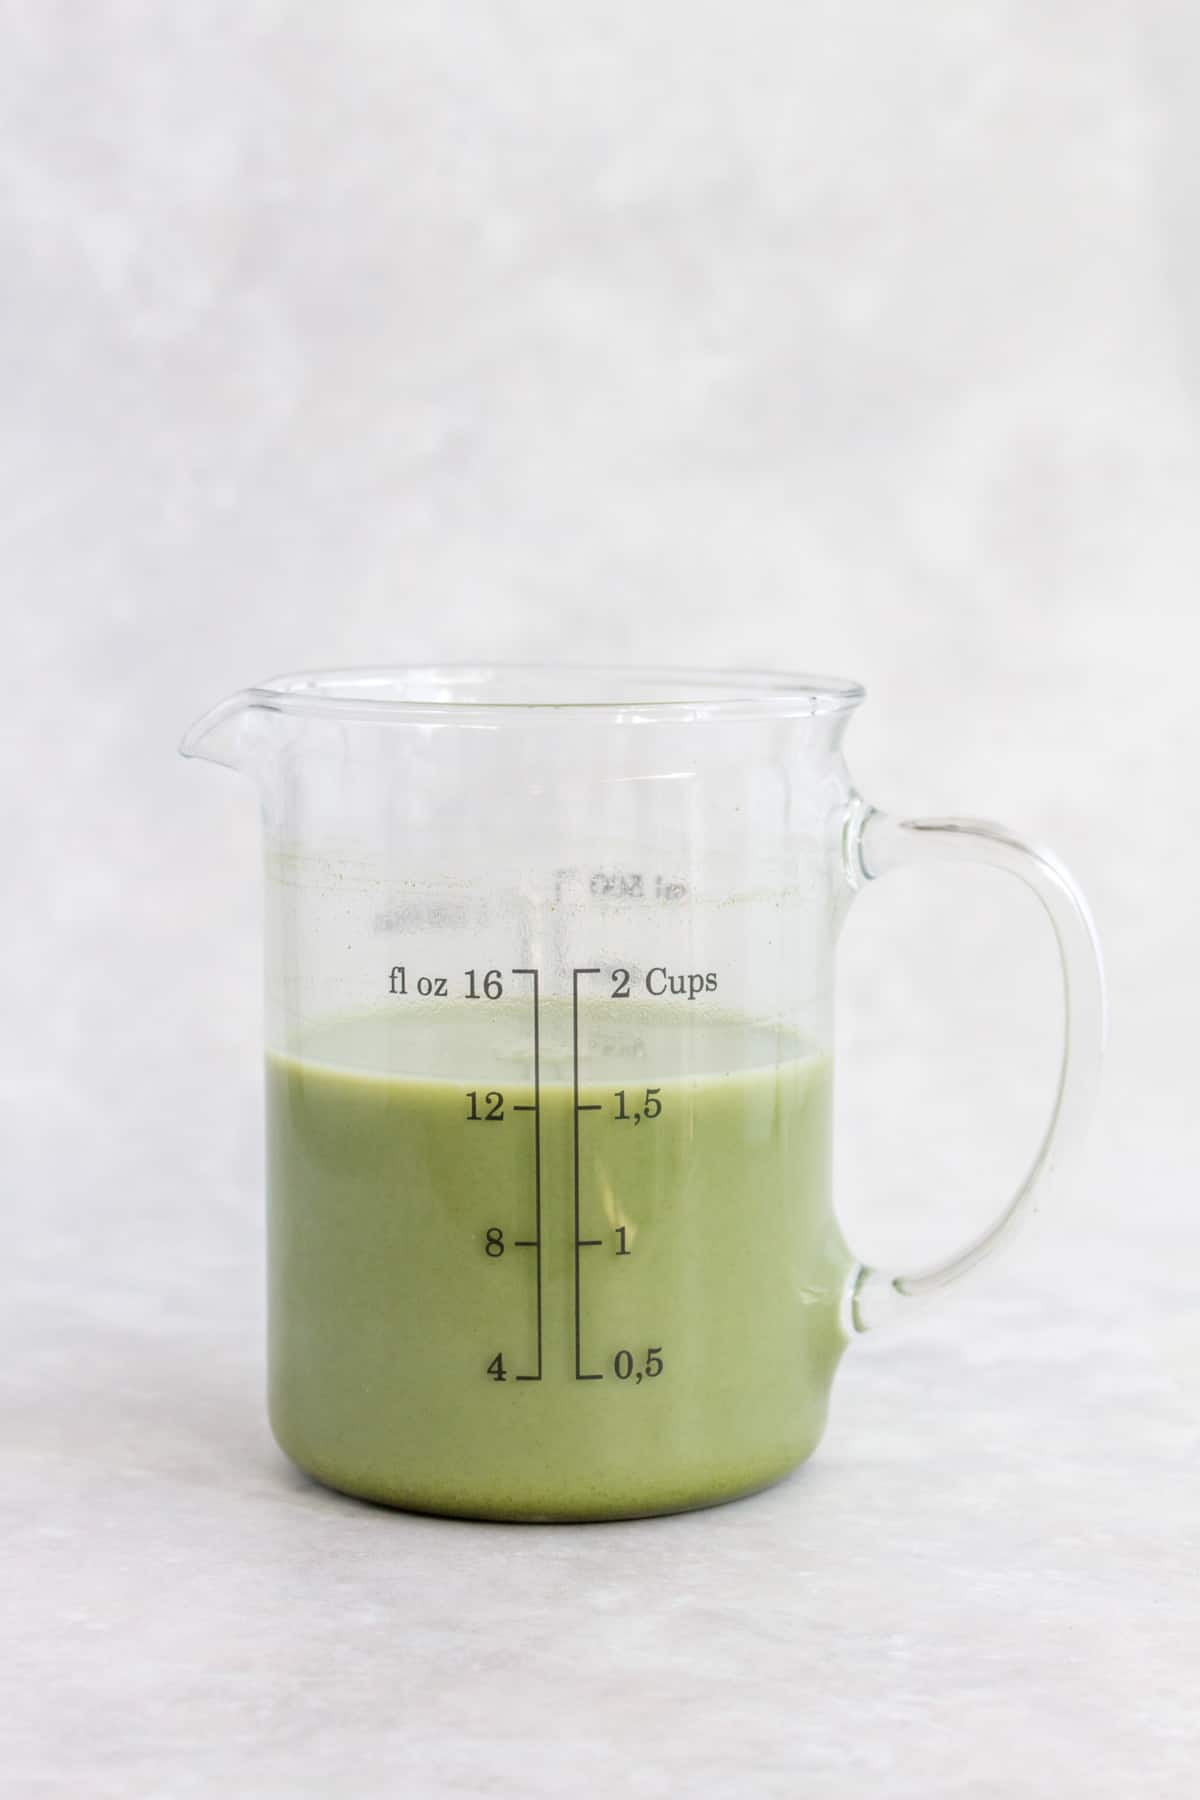 Matcha mixture in a measuring cup.